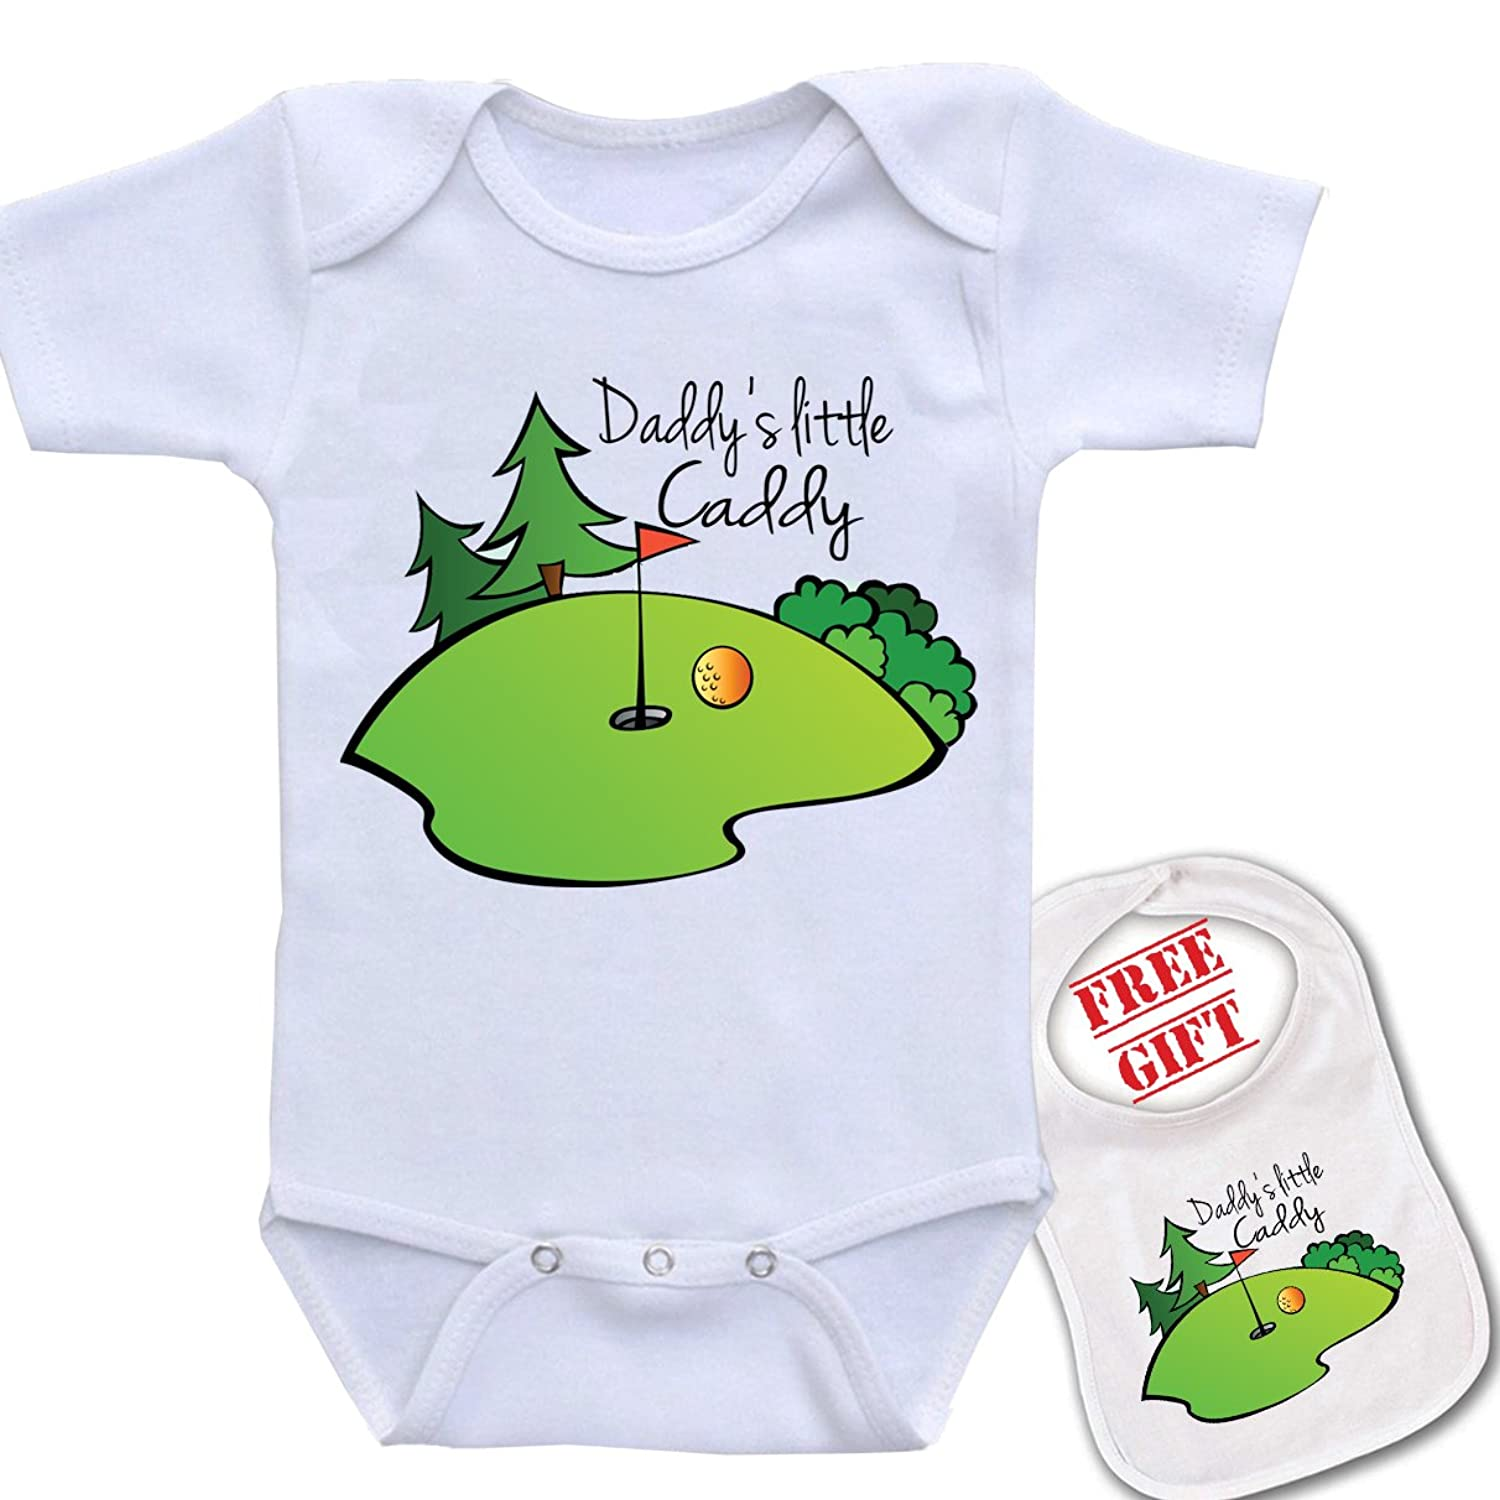 Amazon Com Daddy S Little Caddy Golf Cute Boutique Baby